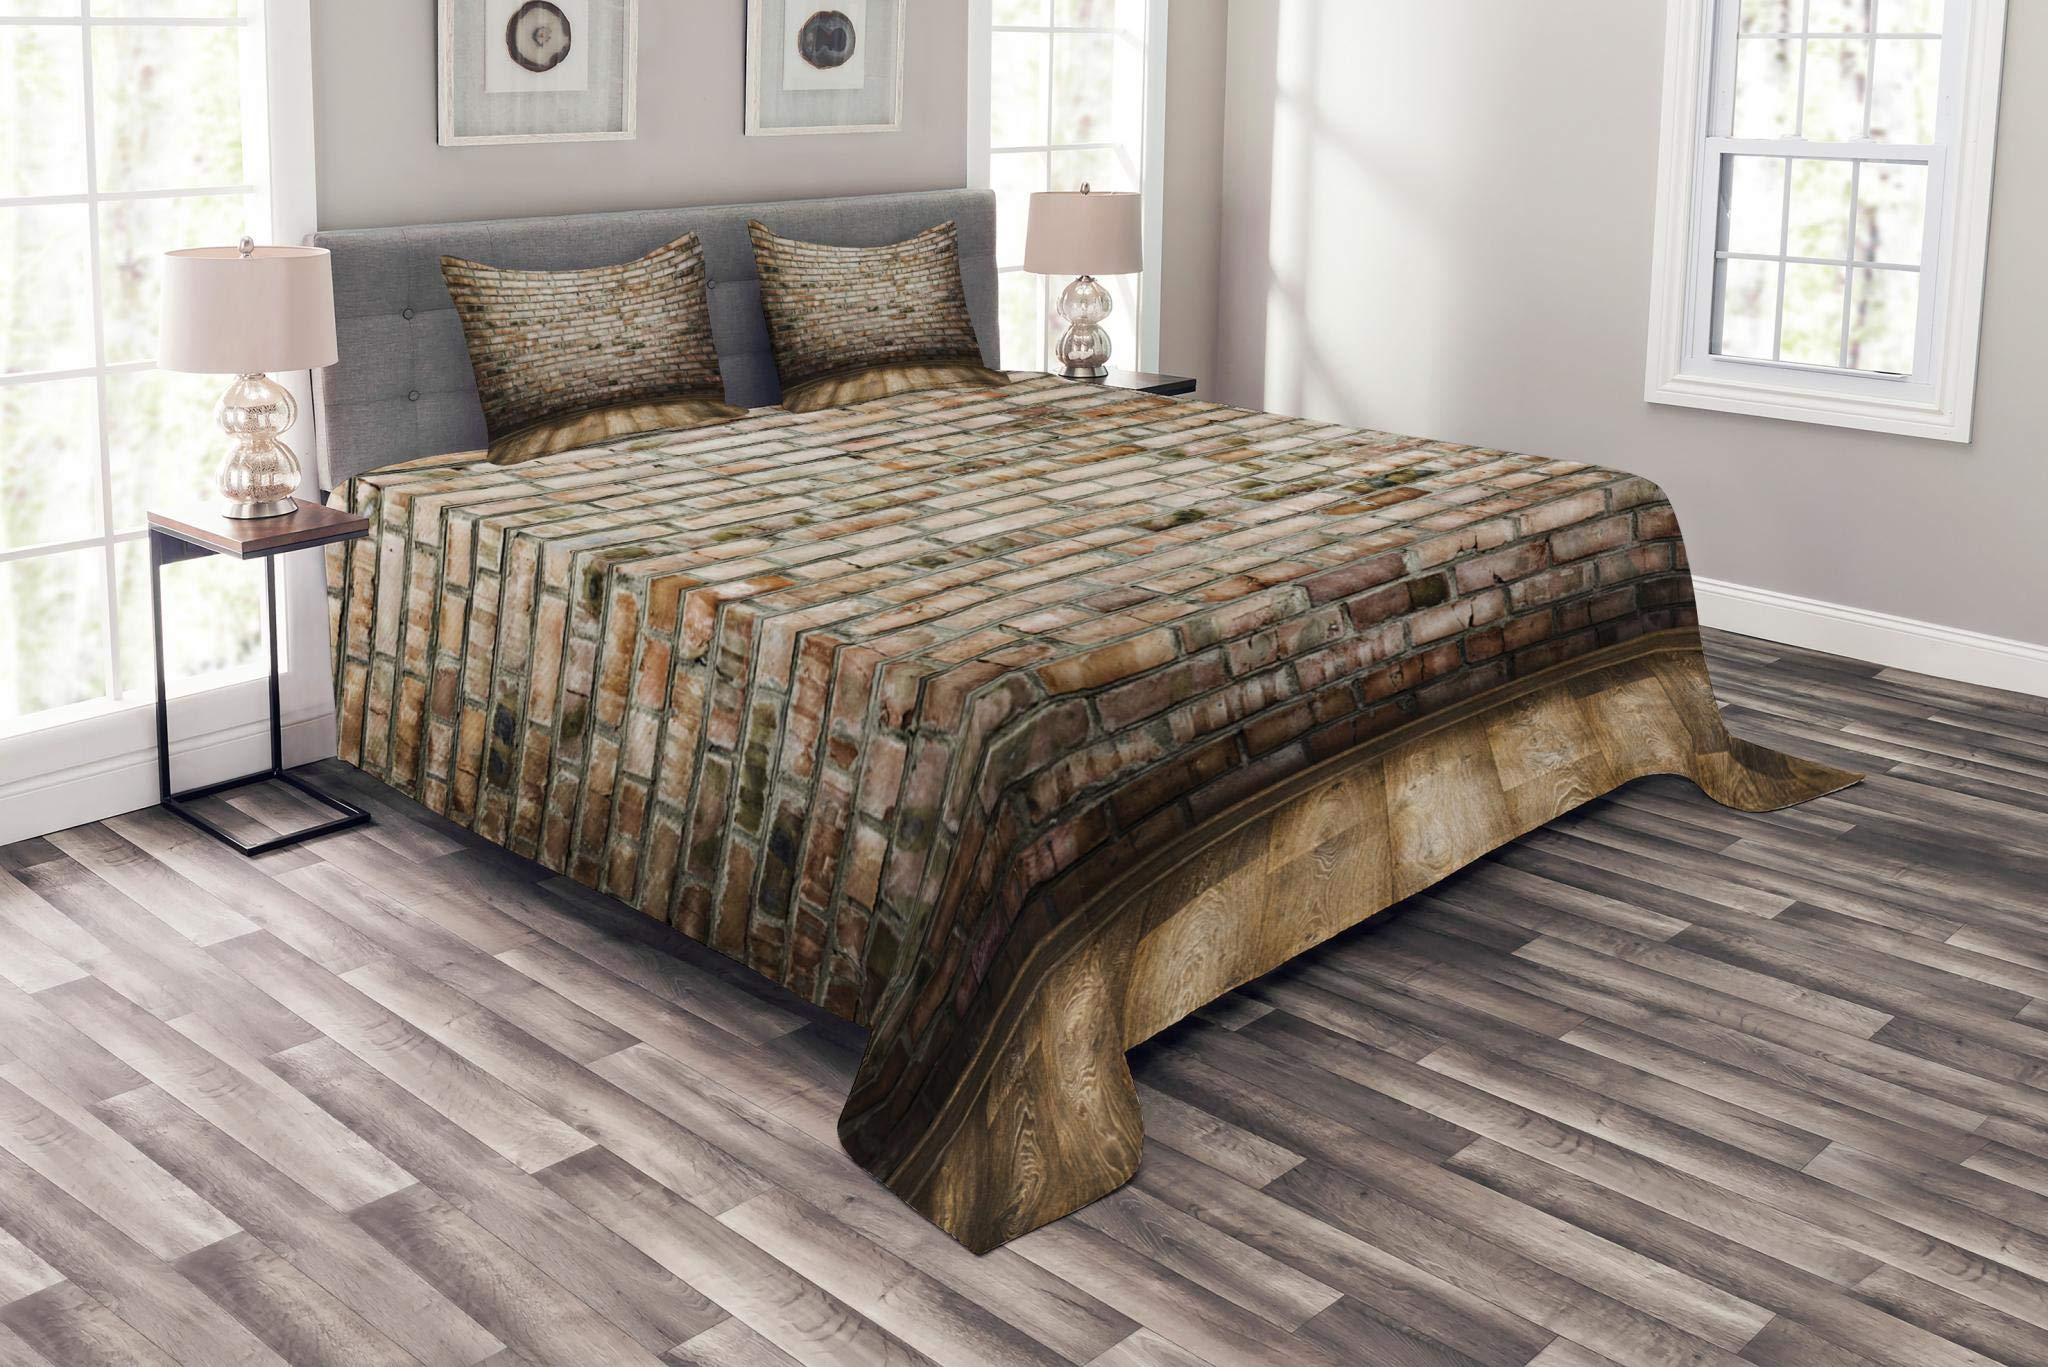 Lunarable Brick Wall Bedspread Set King Size, Ancient Room Interior with Wood Floor Vintage Faded and Stained Brick Print, Decorative Quilted 3 Piece Coverlet Set with 2 Pillow Shams, Multicolor